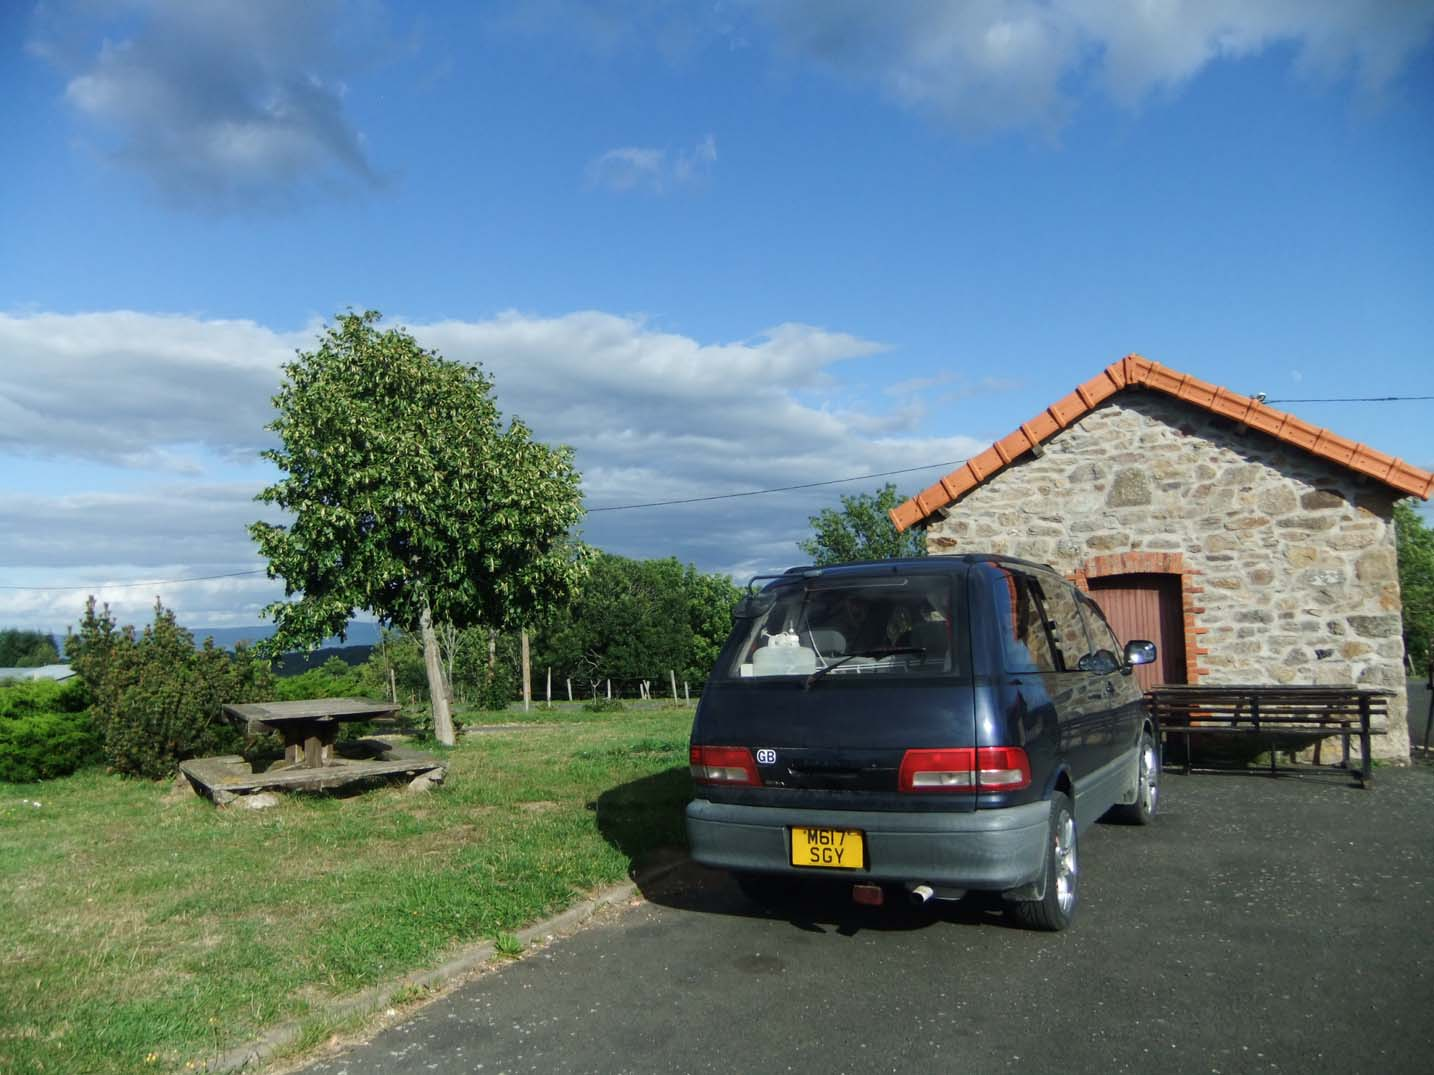 Our van in the Ally aire de service, France